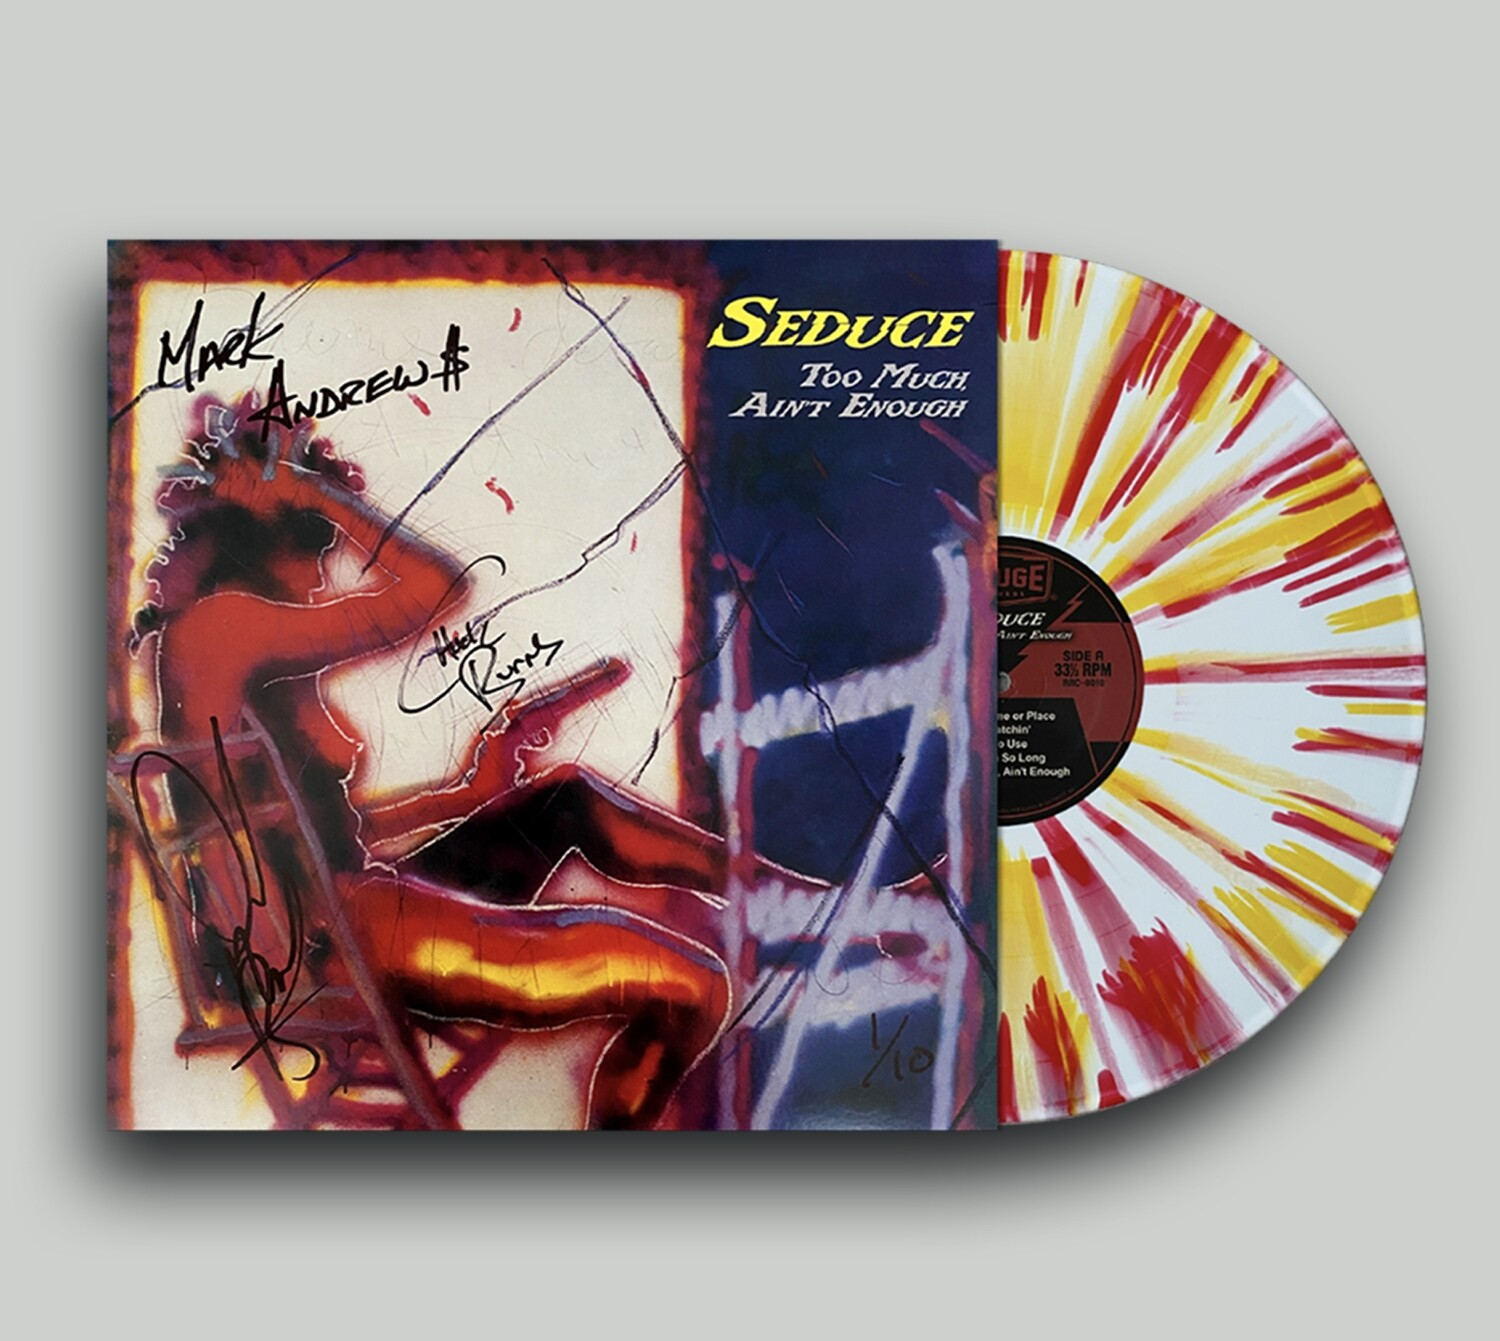 "Seduce ""Too Much Ain't Enough"" - Limited Edition Red, White & Yellow Vinyl (SIGNED)"